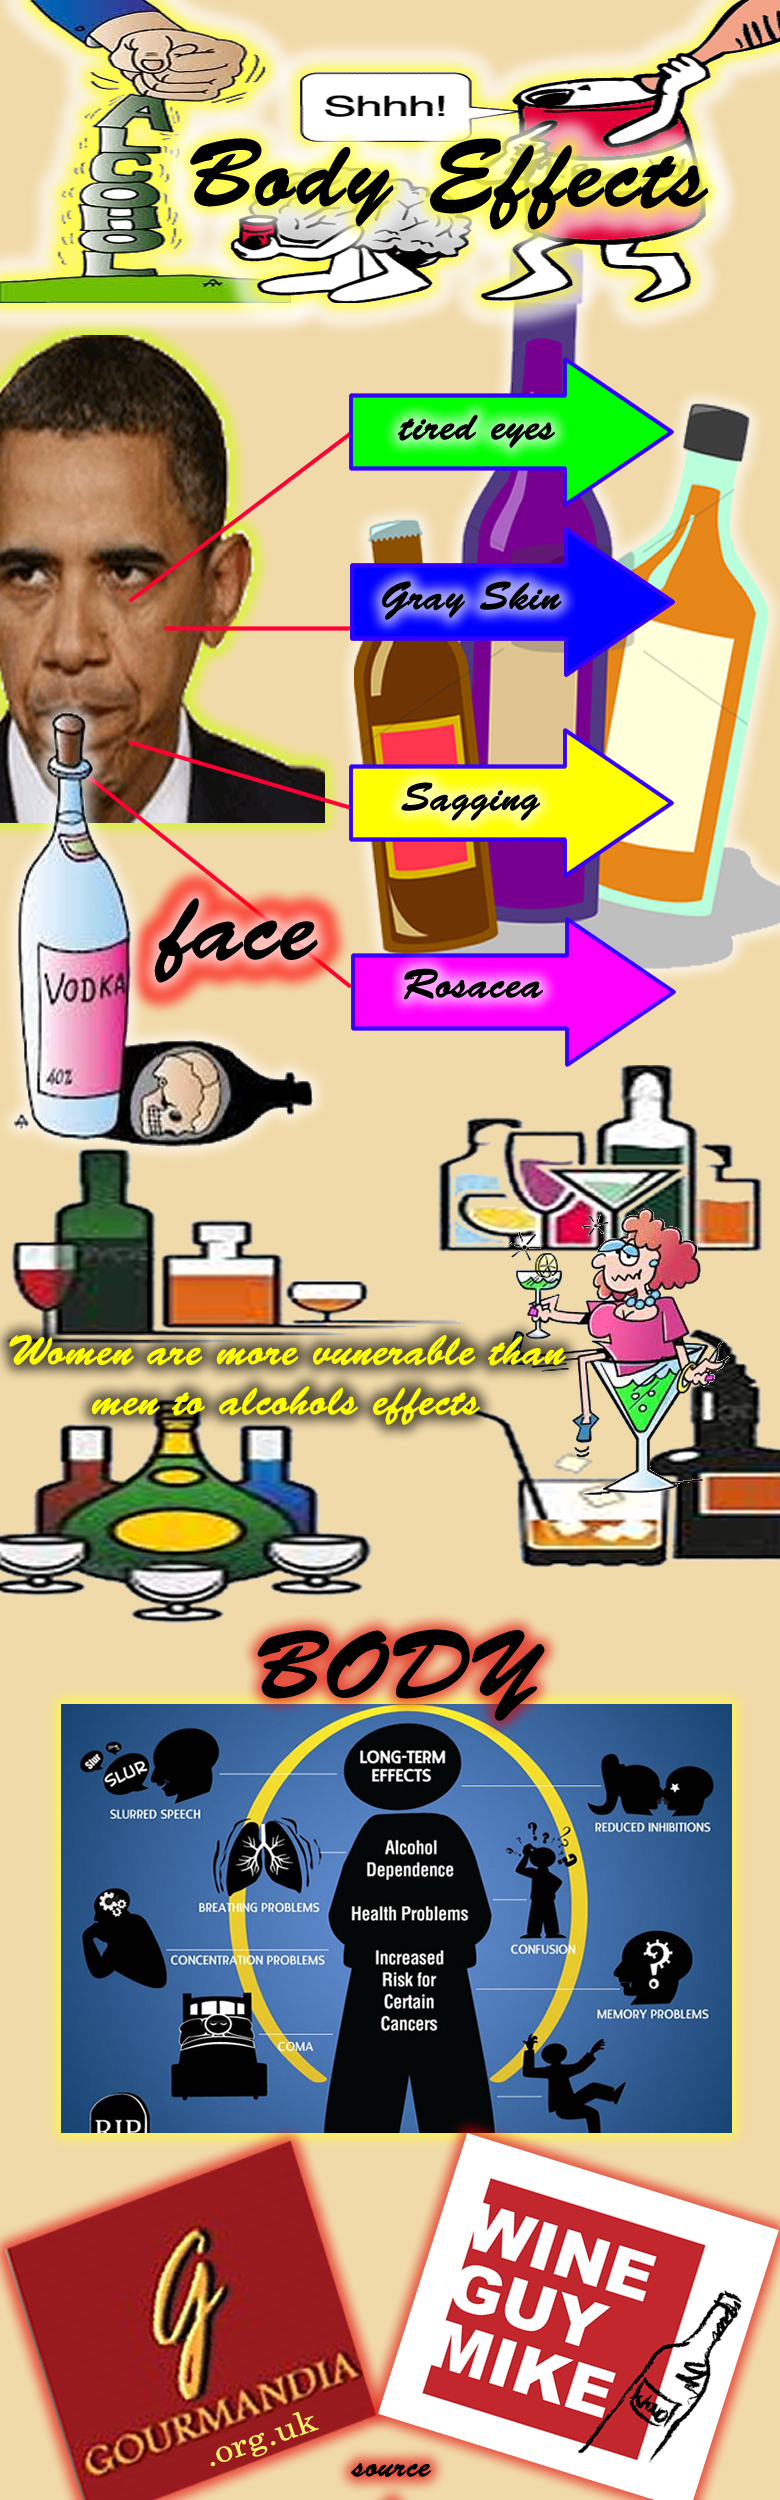 body-effects-of-alcohol